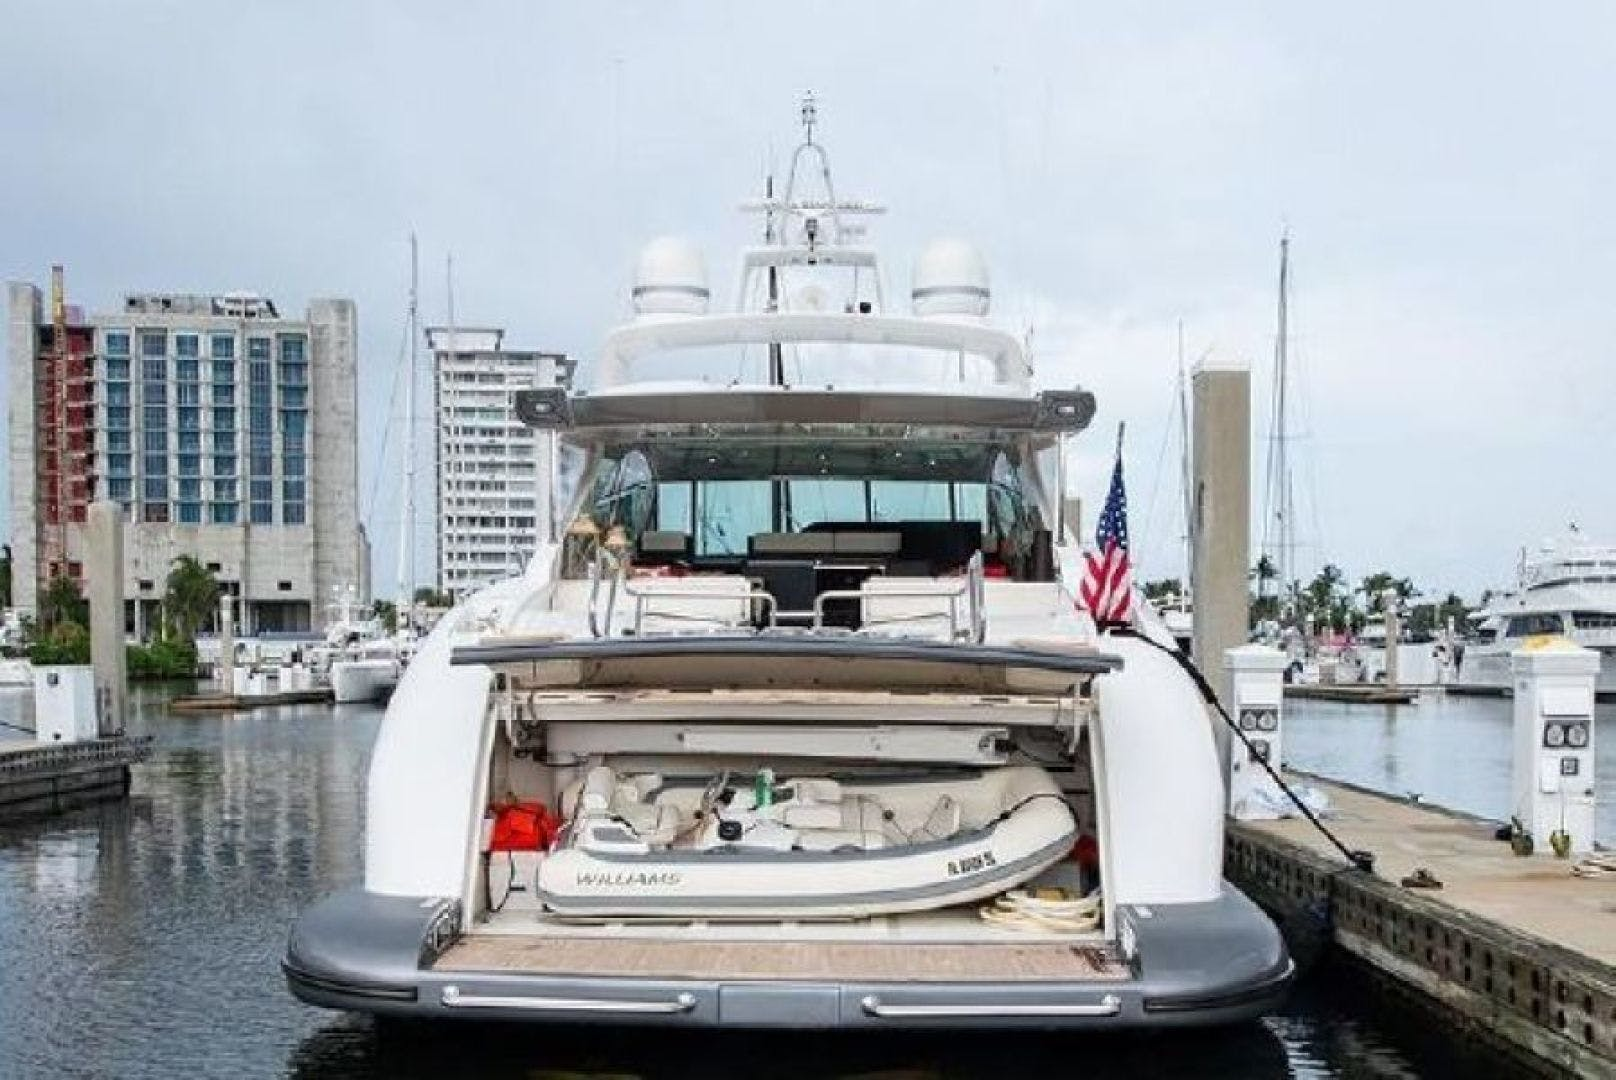 2007 Mangusta 80' Motor Yacht COLD BLOODED   Picture 3 of 38